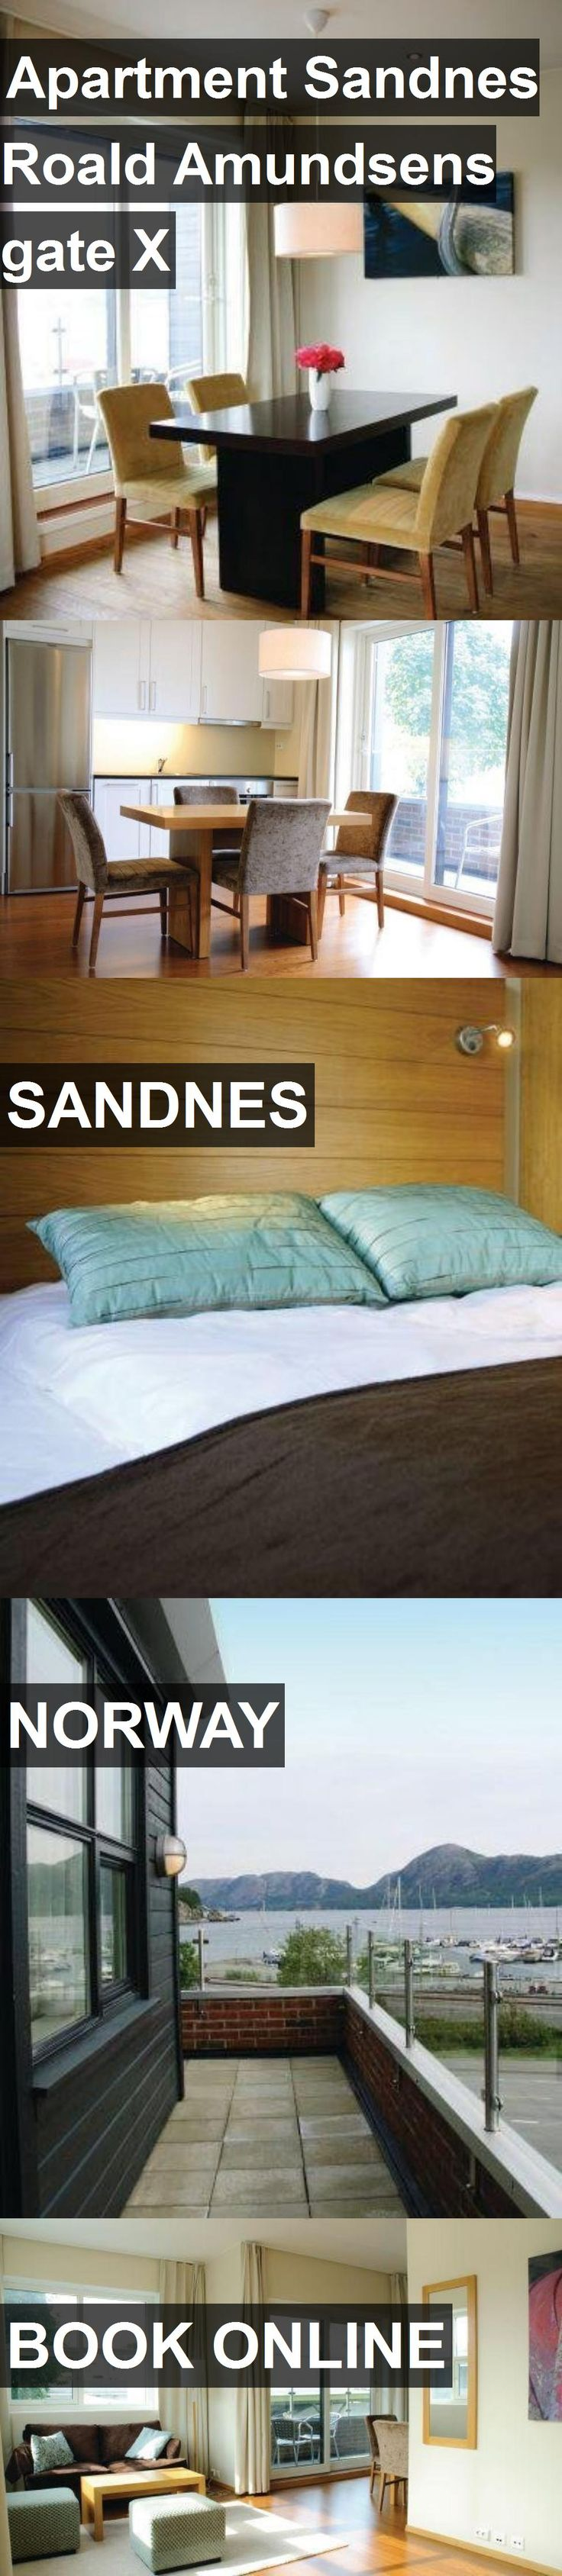 Apartment Sandnes Roald Amundsens gate X in Sandnes, Norway. For more information, photos, reviews and best prices please follow the link. #Norway #Sandnes #travel #vacation #apartment